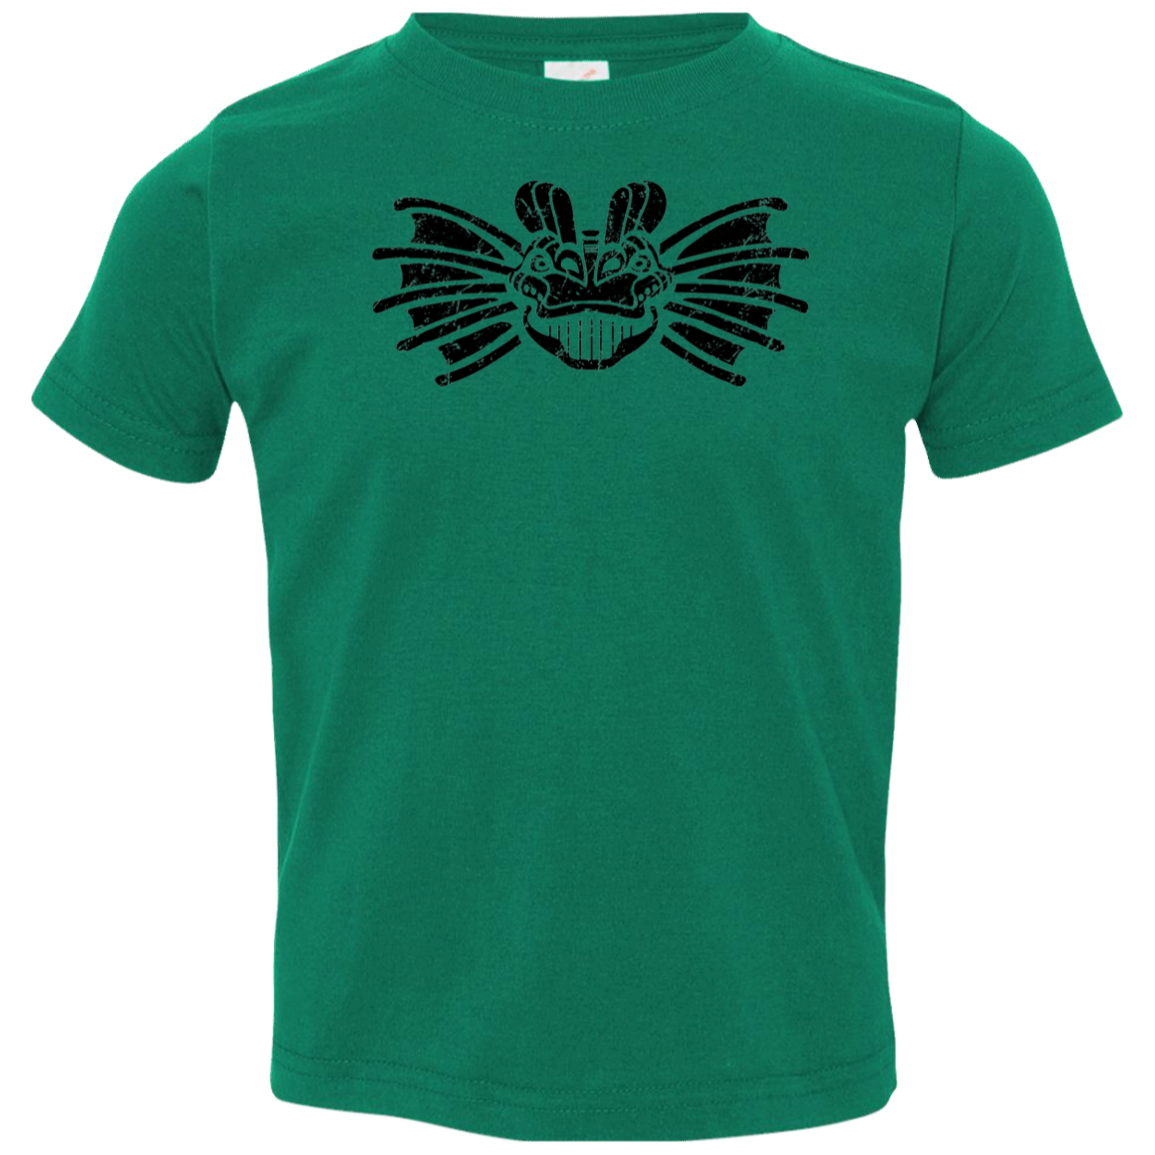 Black Distressed Emblem T-Shirt for Toddlers (Dilophosaurus/Frill)